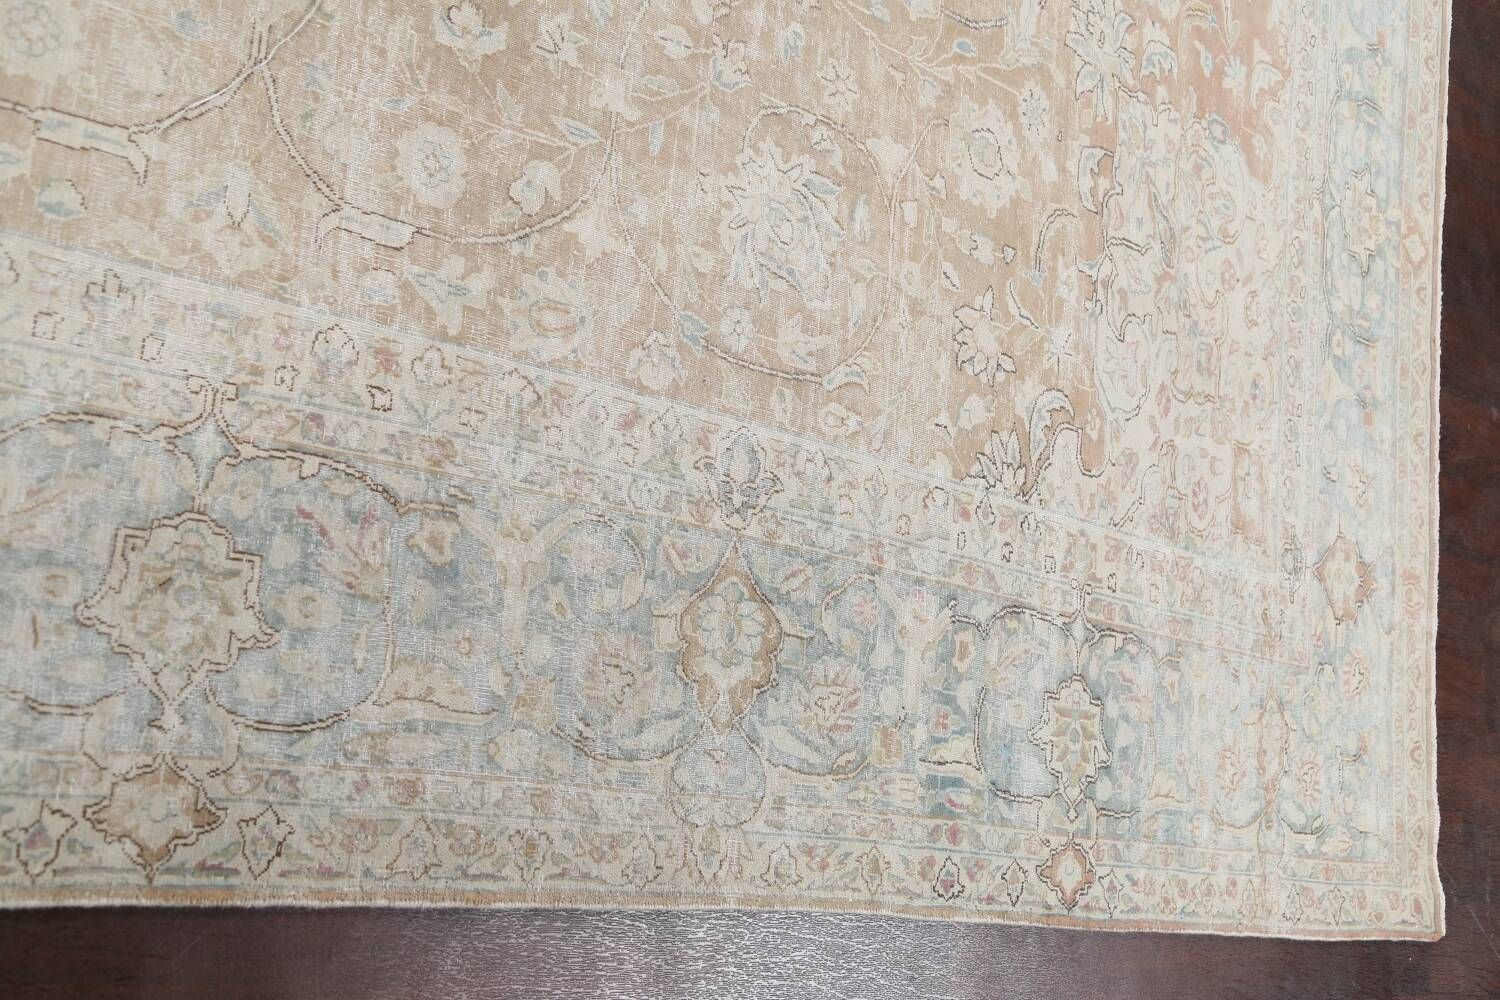 Muted Floral Kerman Persian Area Rug 10x13 image 13